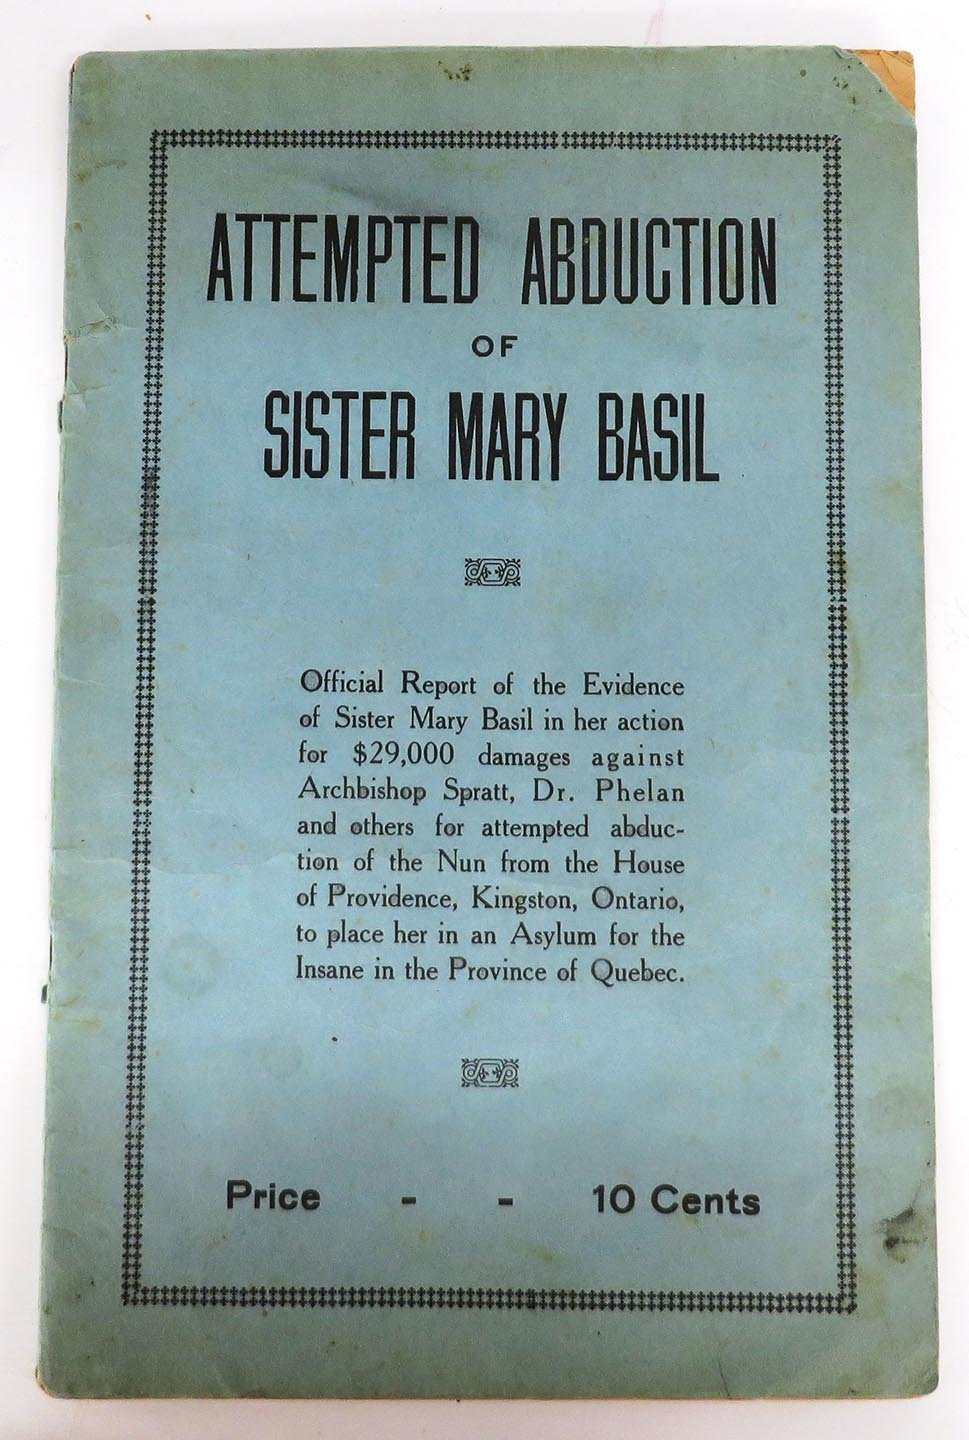 Attempted Abduction of Sister Mary Basil